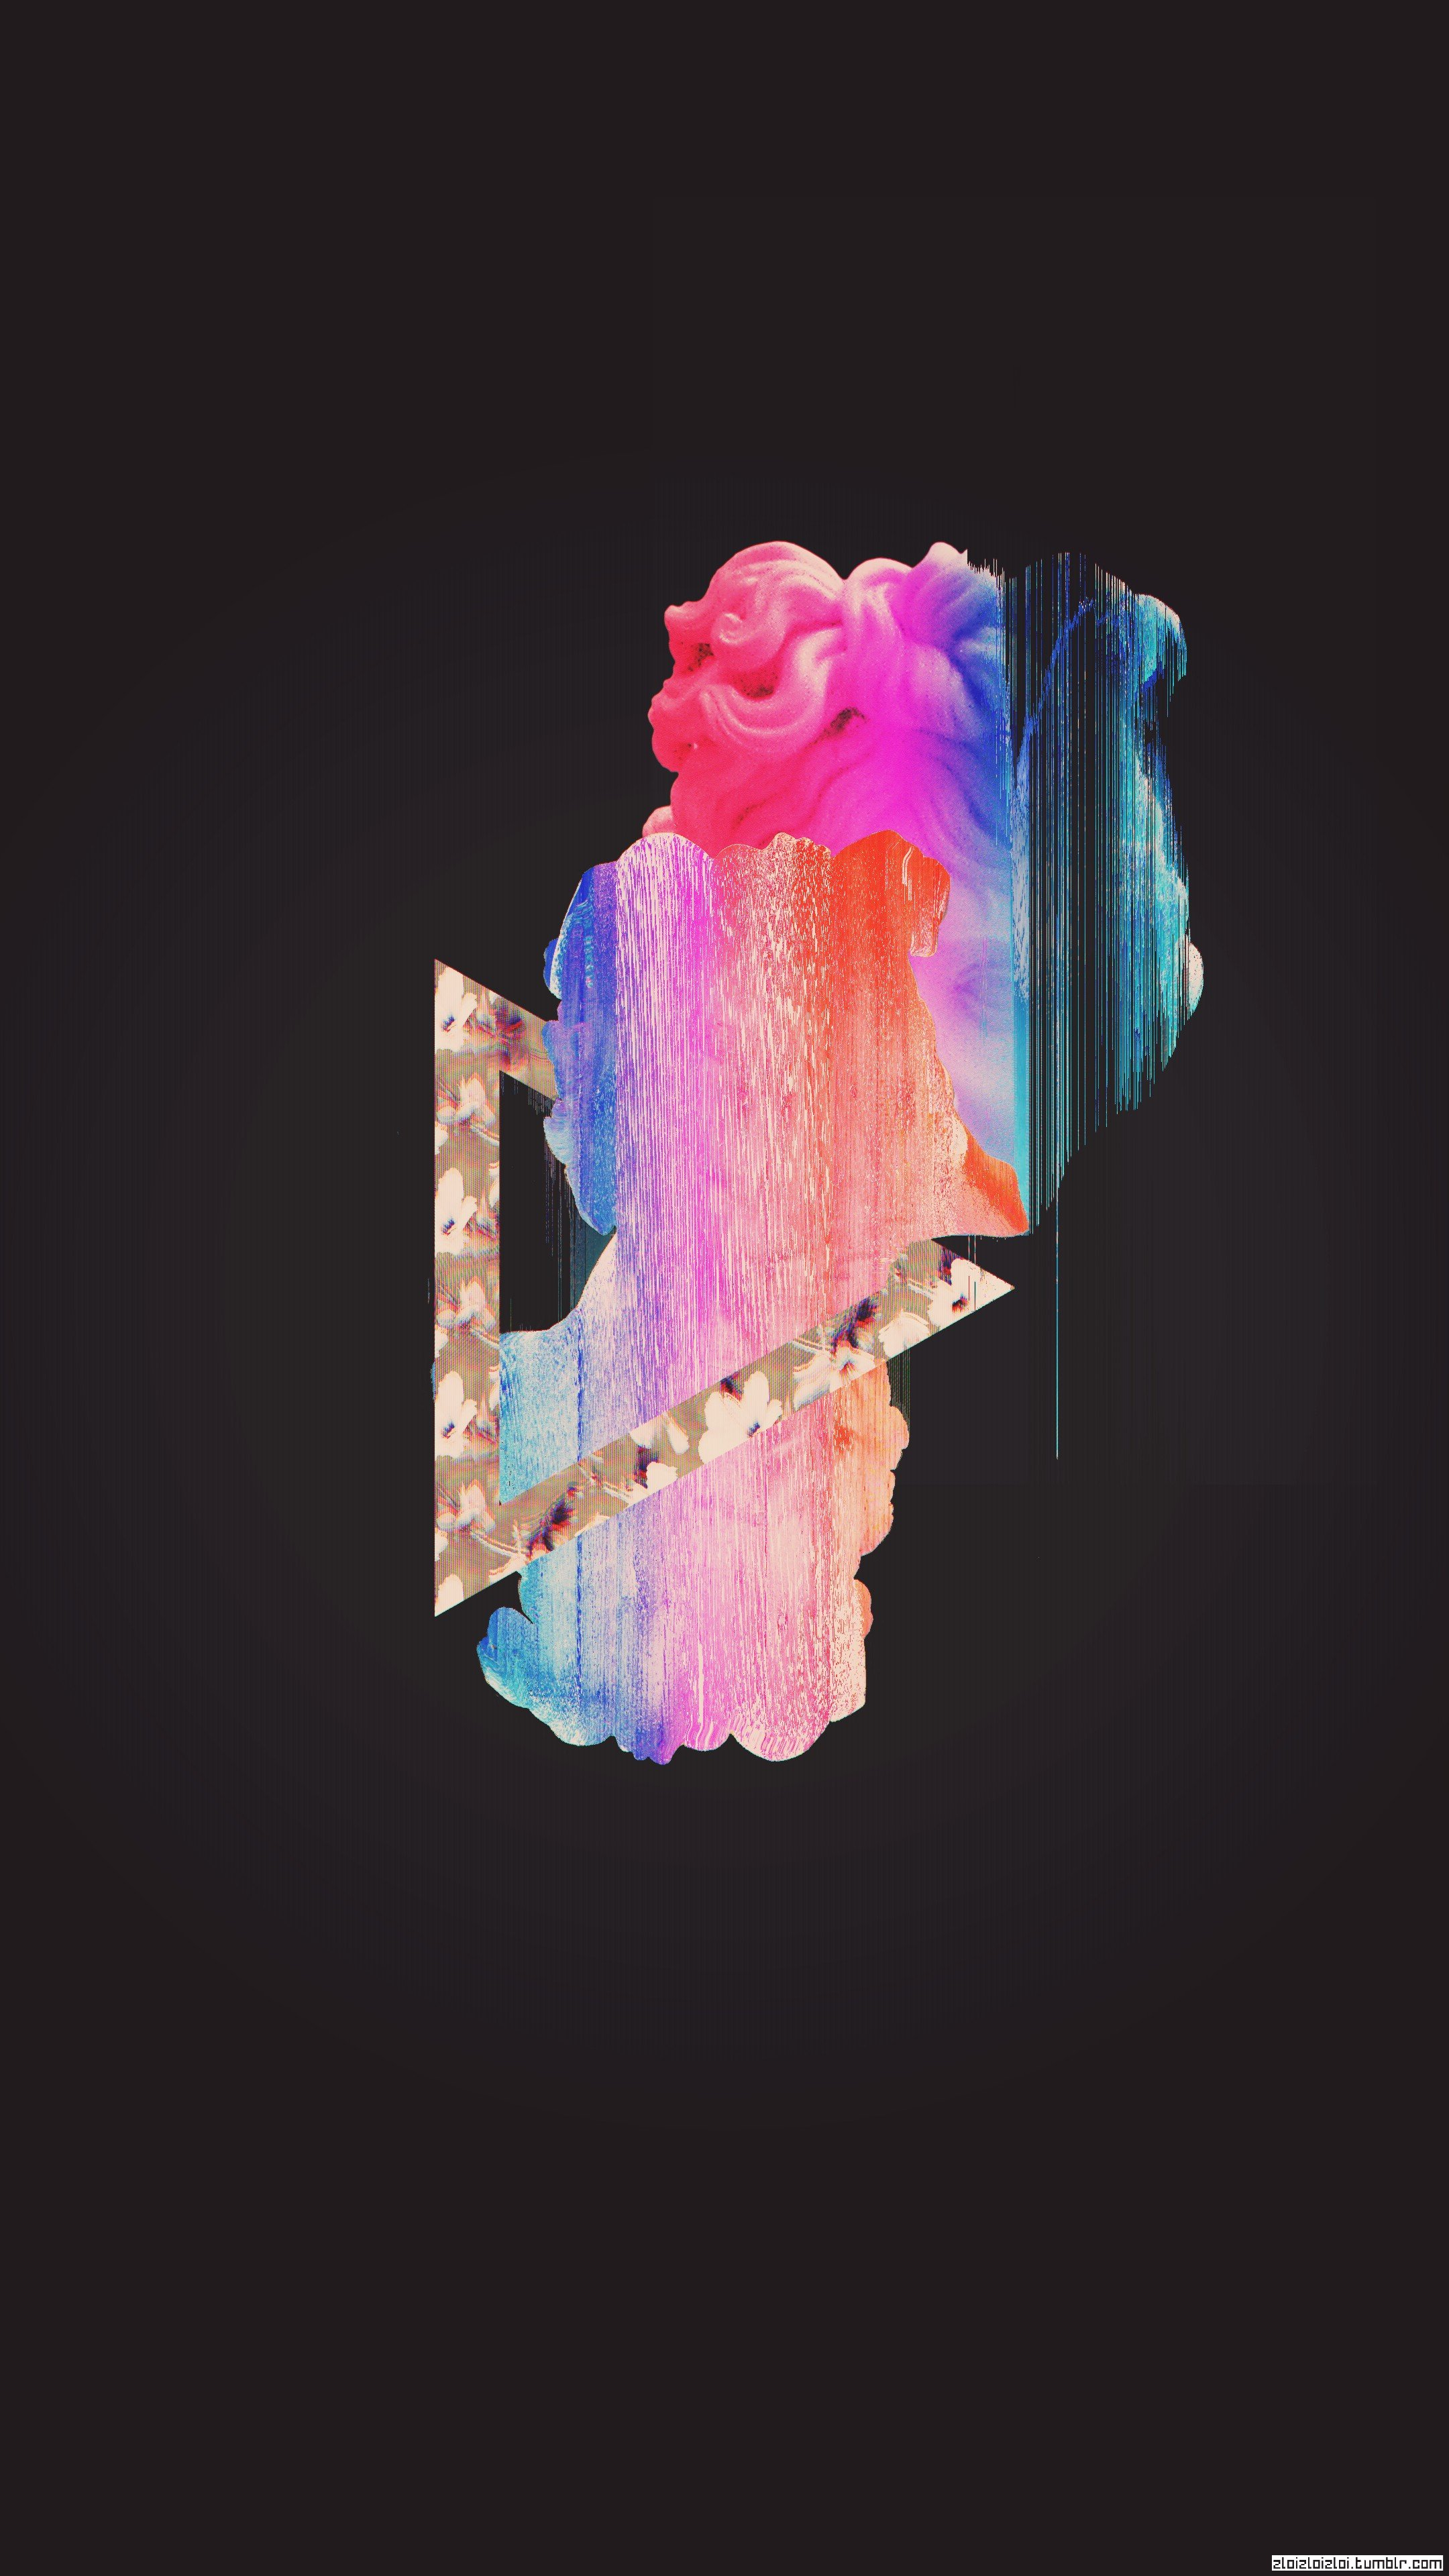 Glitch Art Vaporwave Abstract Hd Wallpapers Desktop